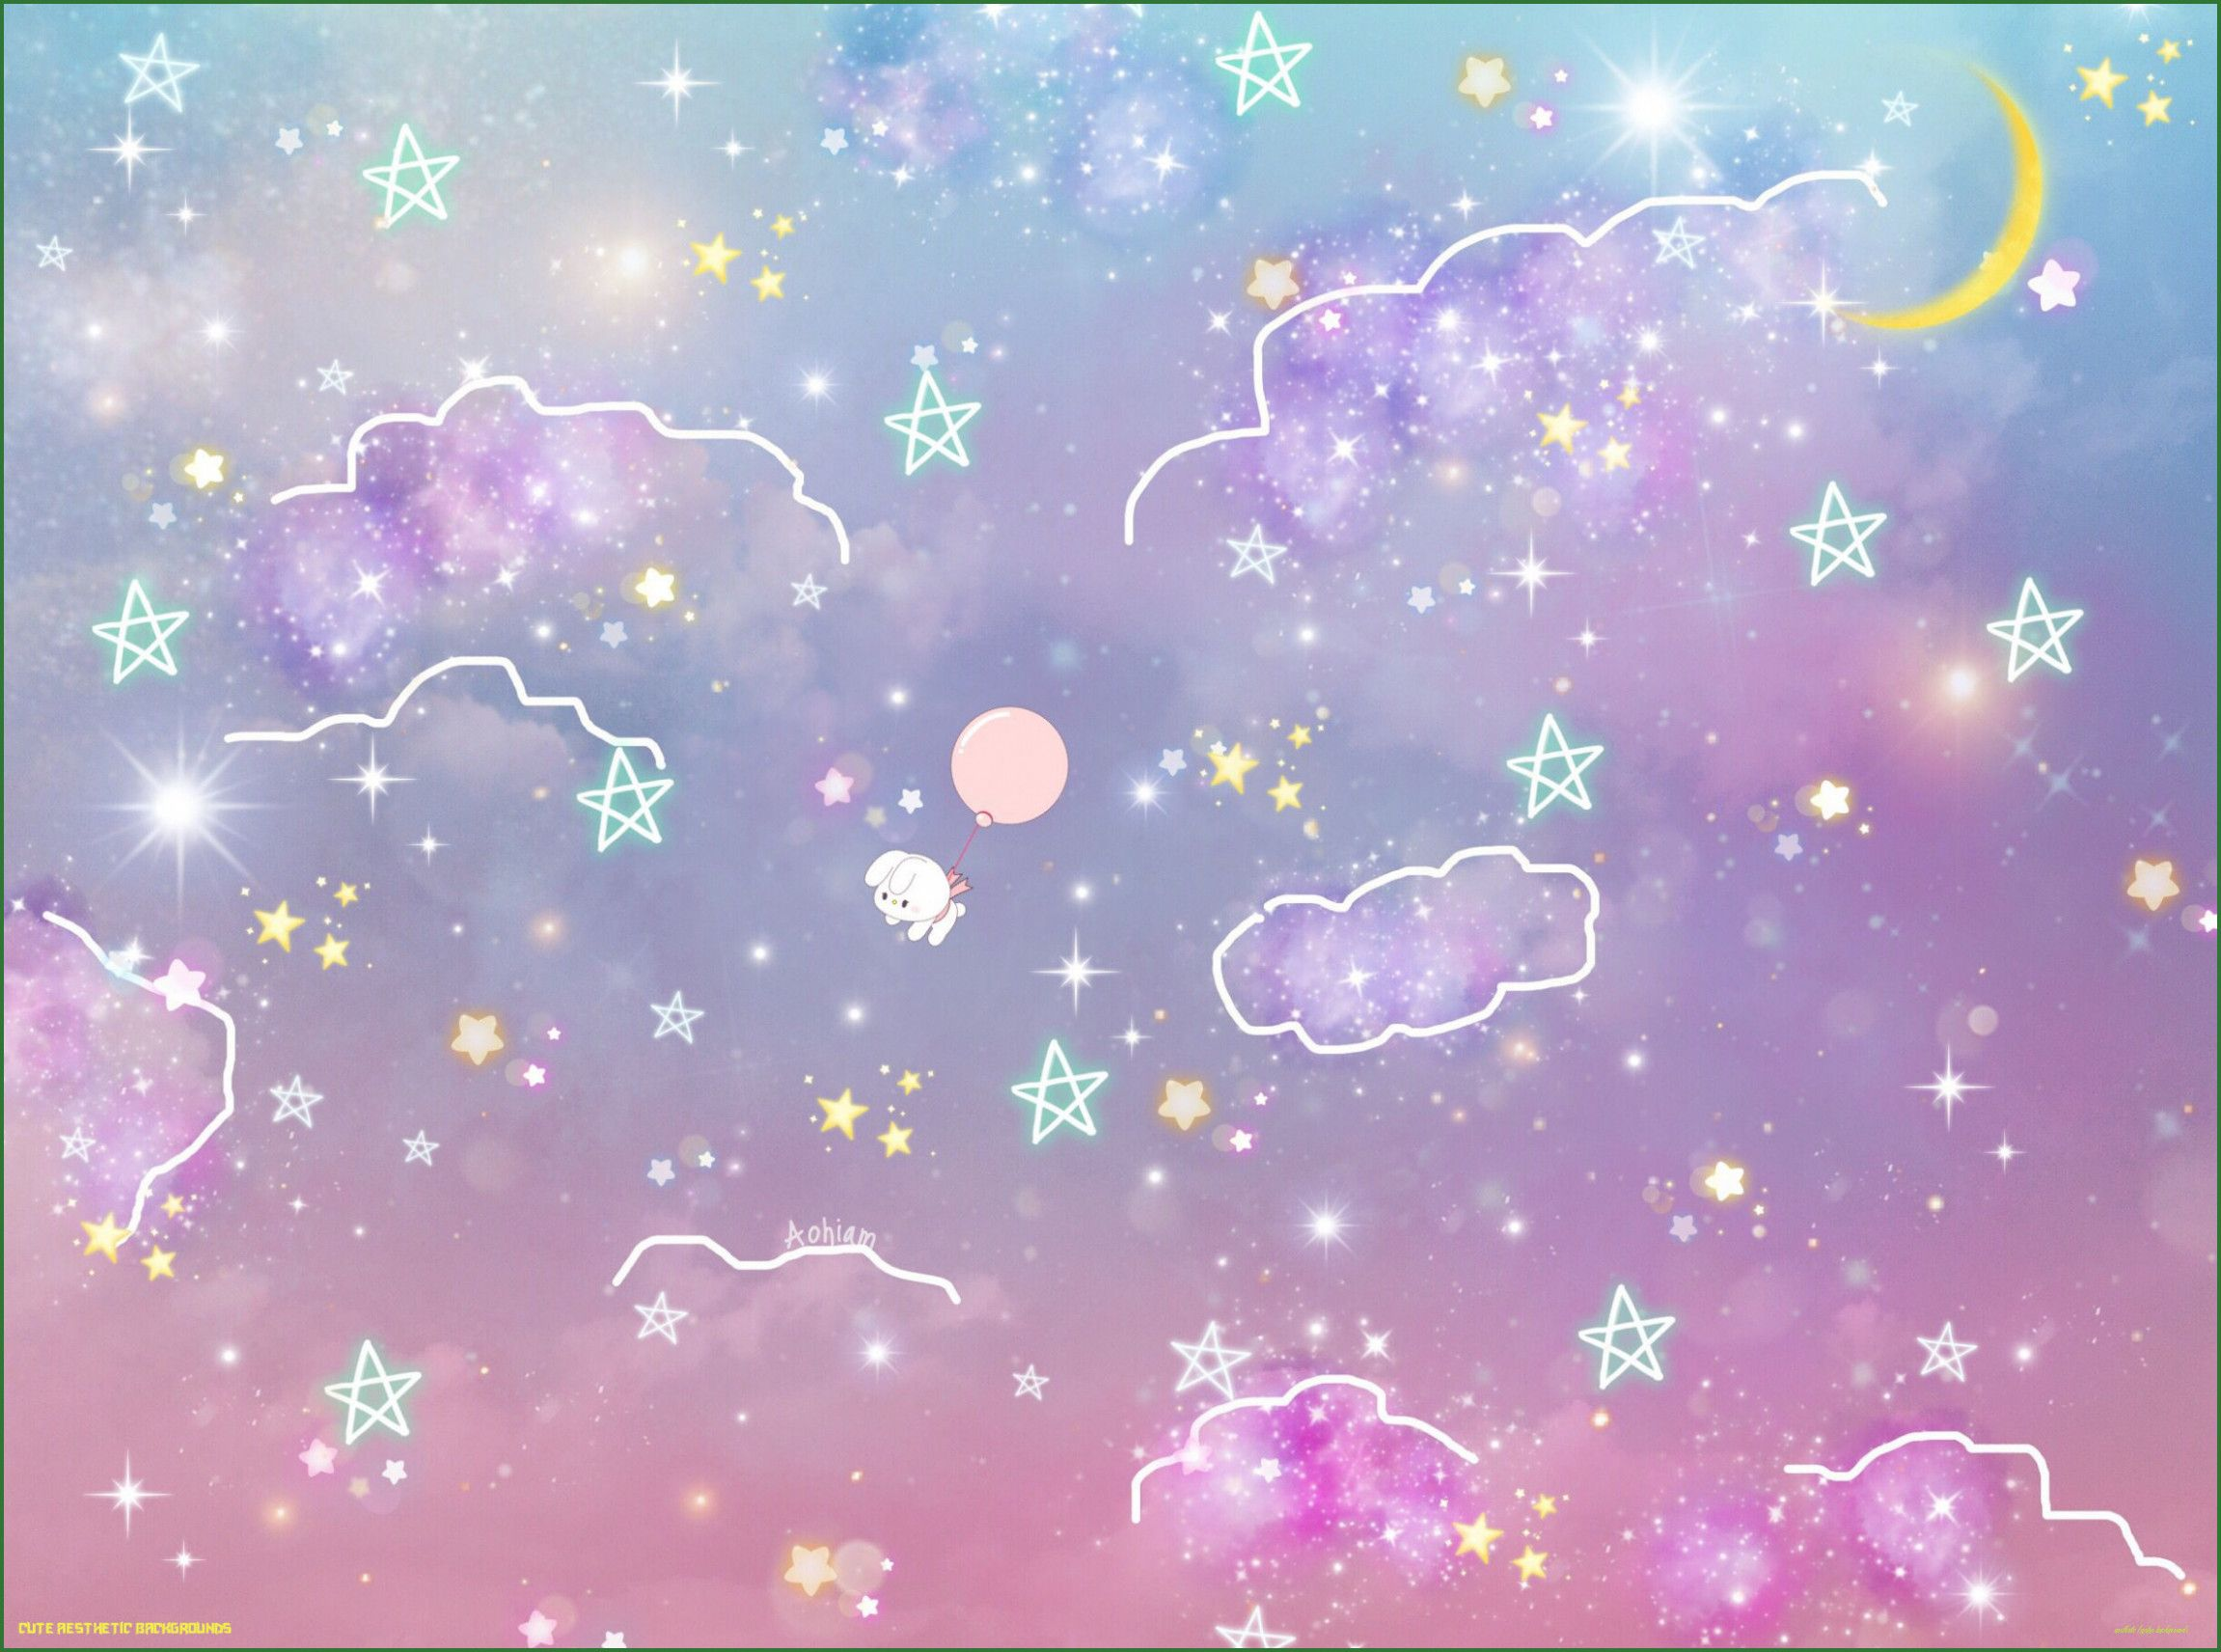 Aesthetic Laptop Backgrounds Is So Famous But Why Aesthetic Laptop Backgrounds Https Aestheticw Aesthetic Desktop Wallpaper Pink Aesthetic Cute Wallpapers